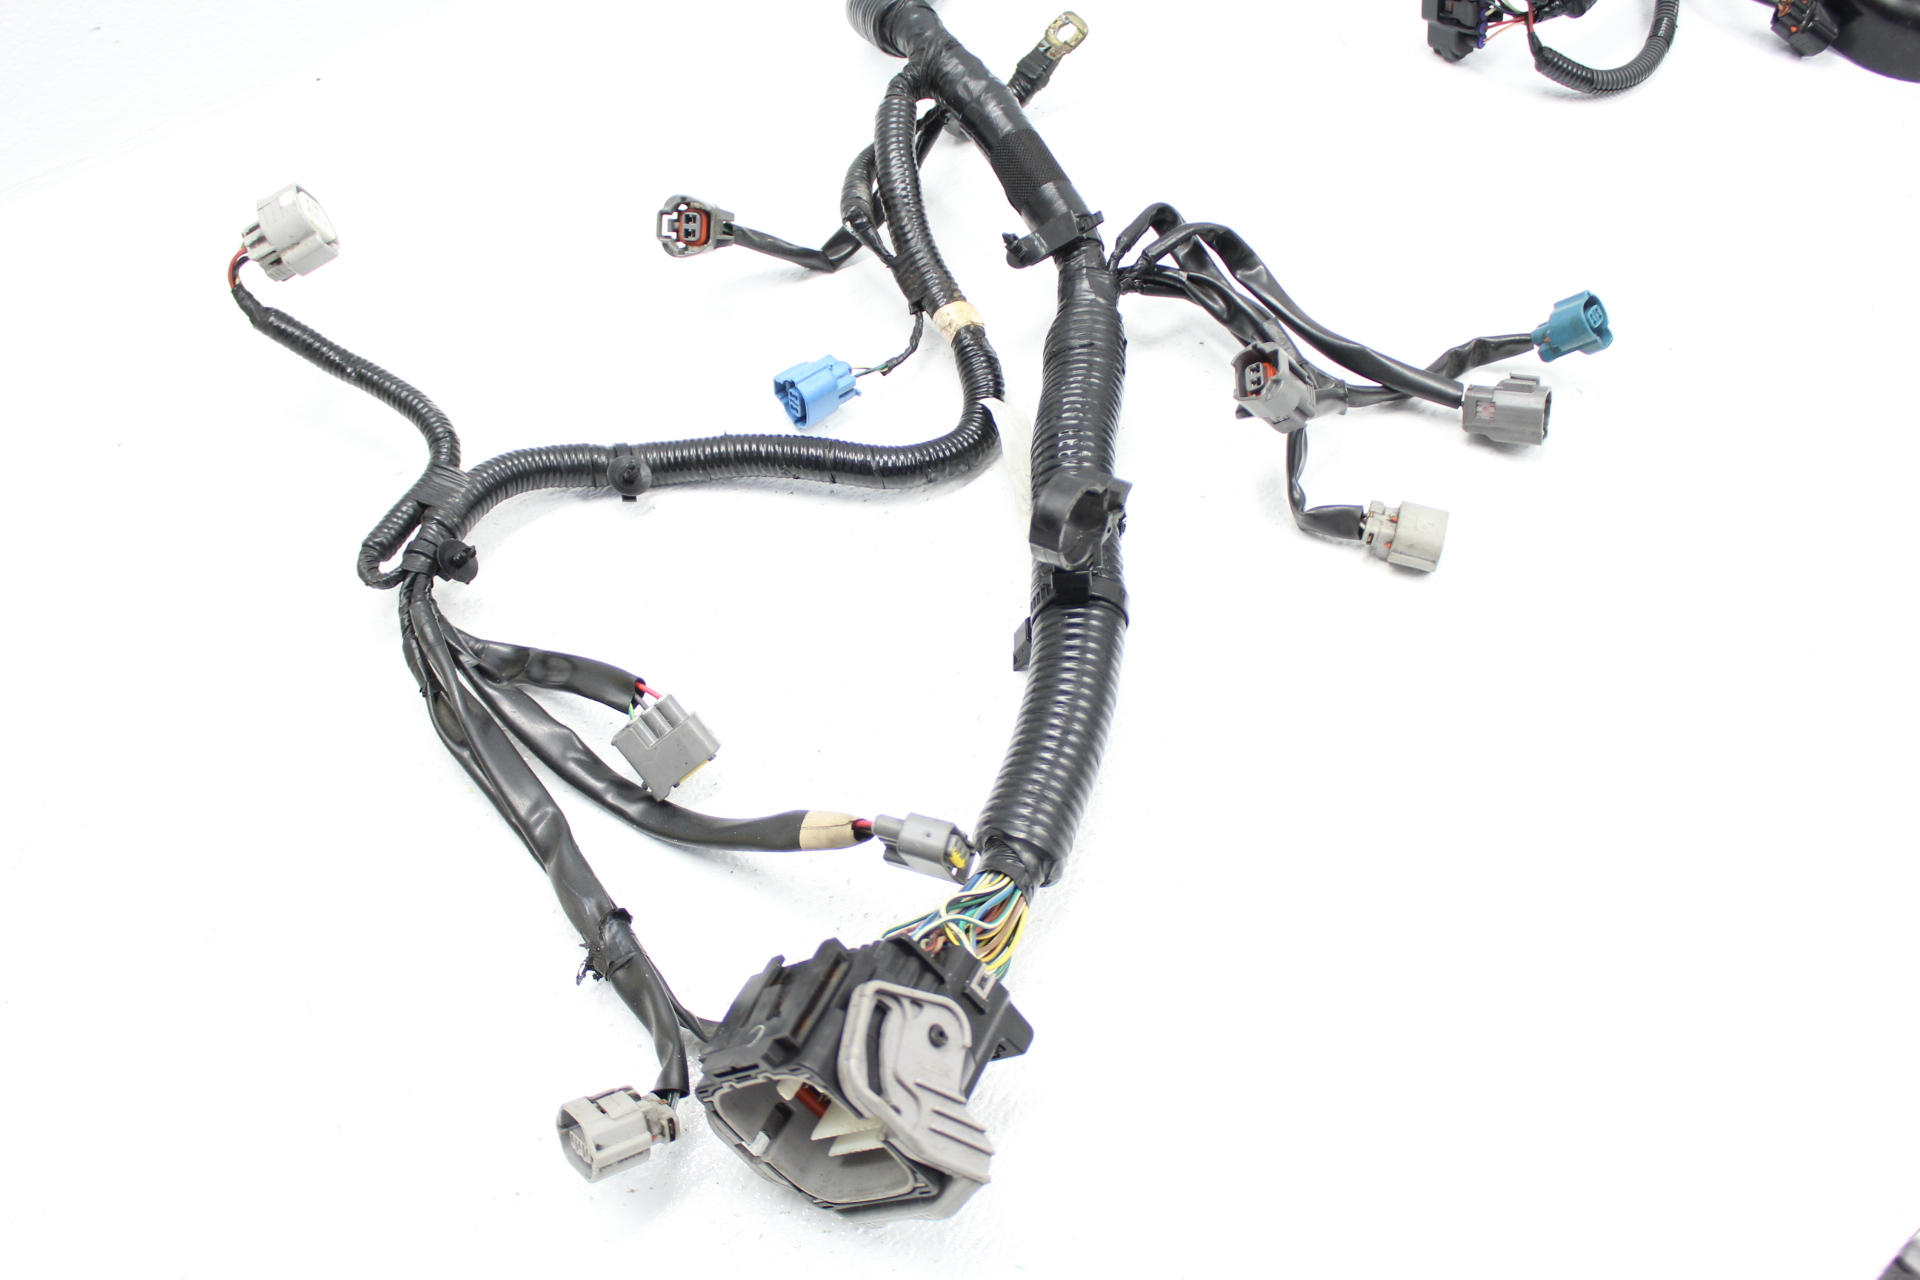 08 14 Subaru Wrx Sti Engine Wire Wiring Harness